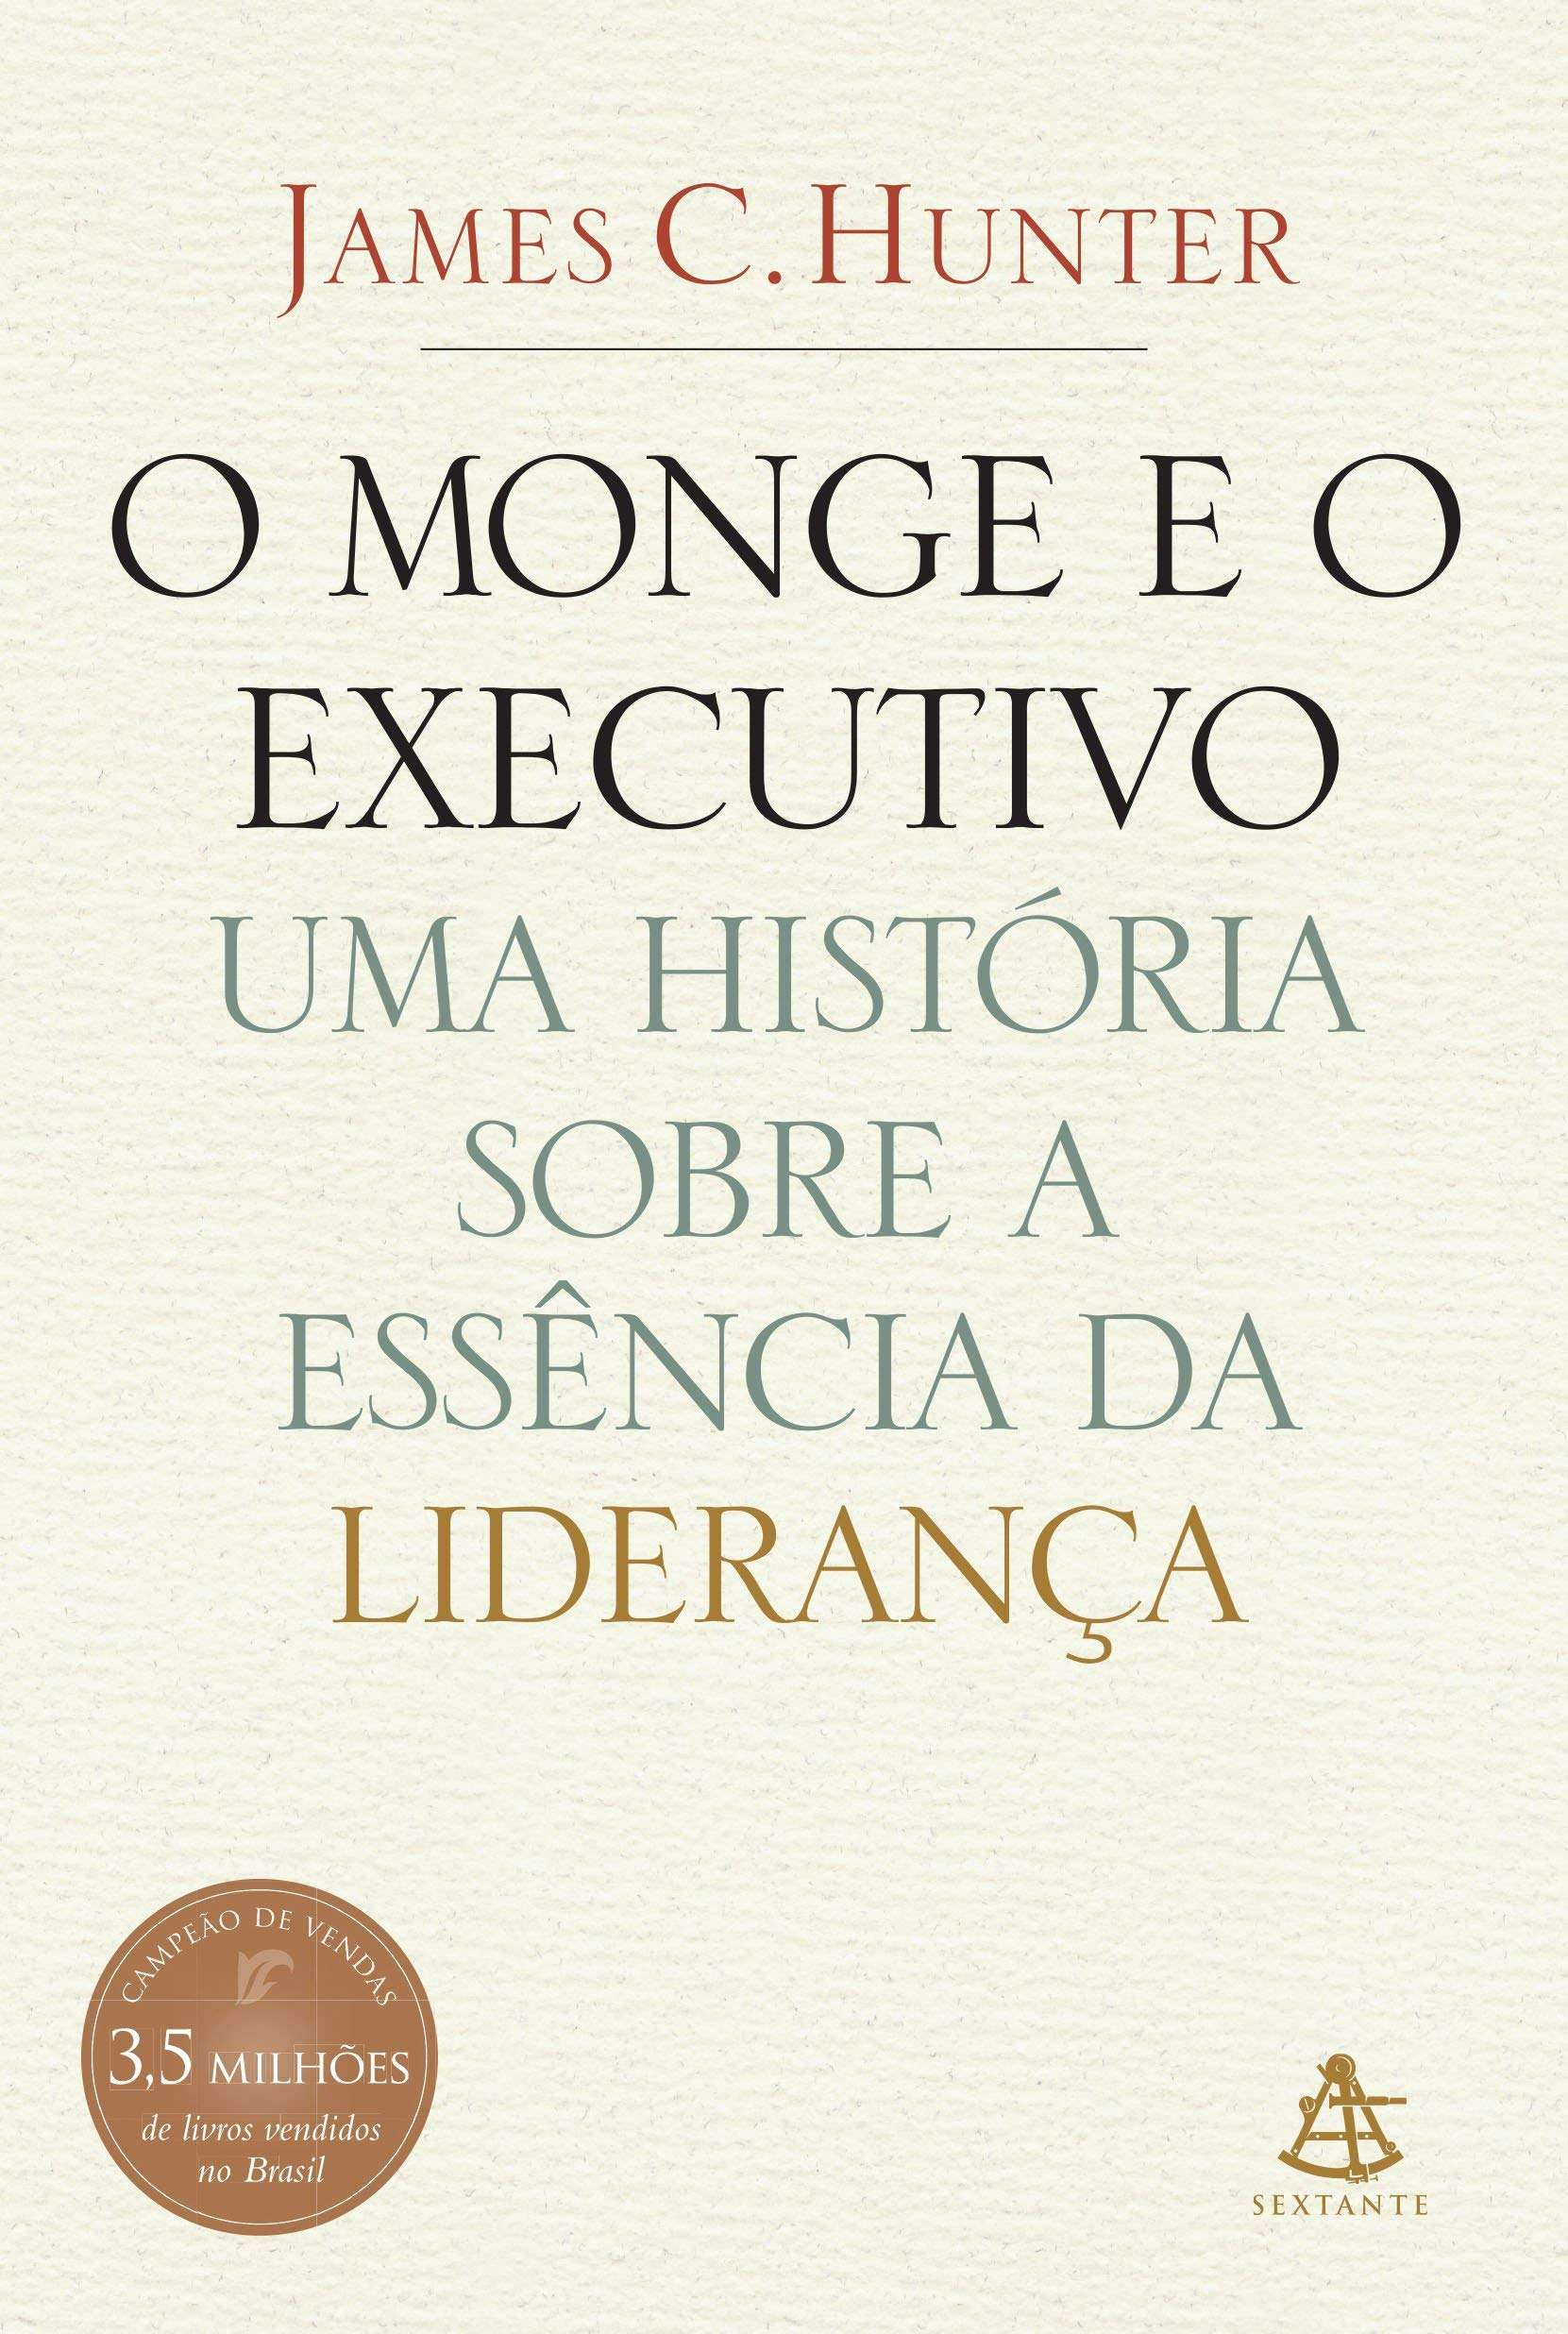 Imagem da Thumbnail para O Monge e o Executivo por James C. Hunter